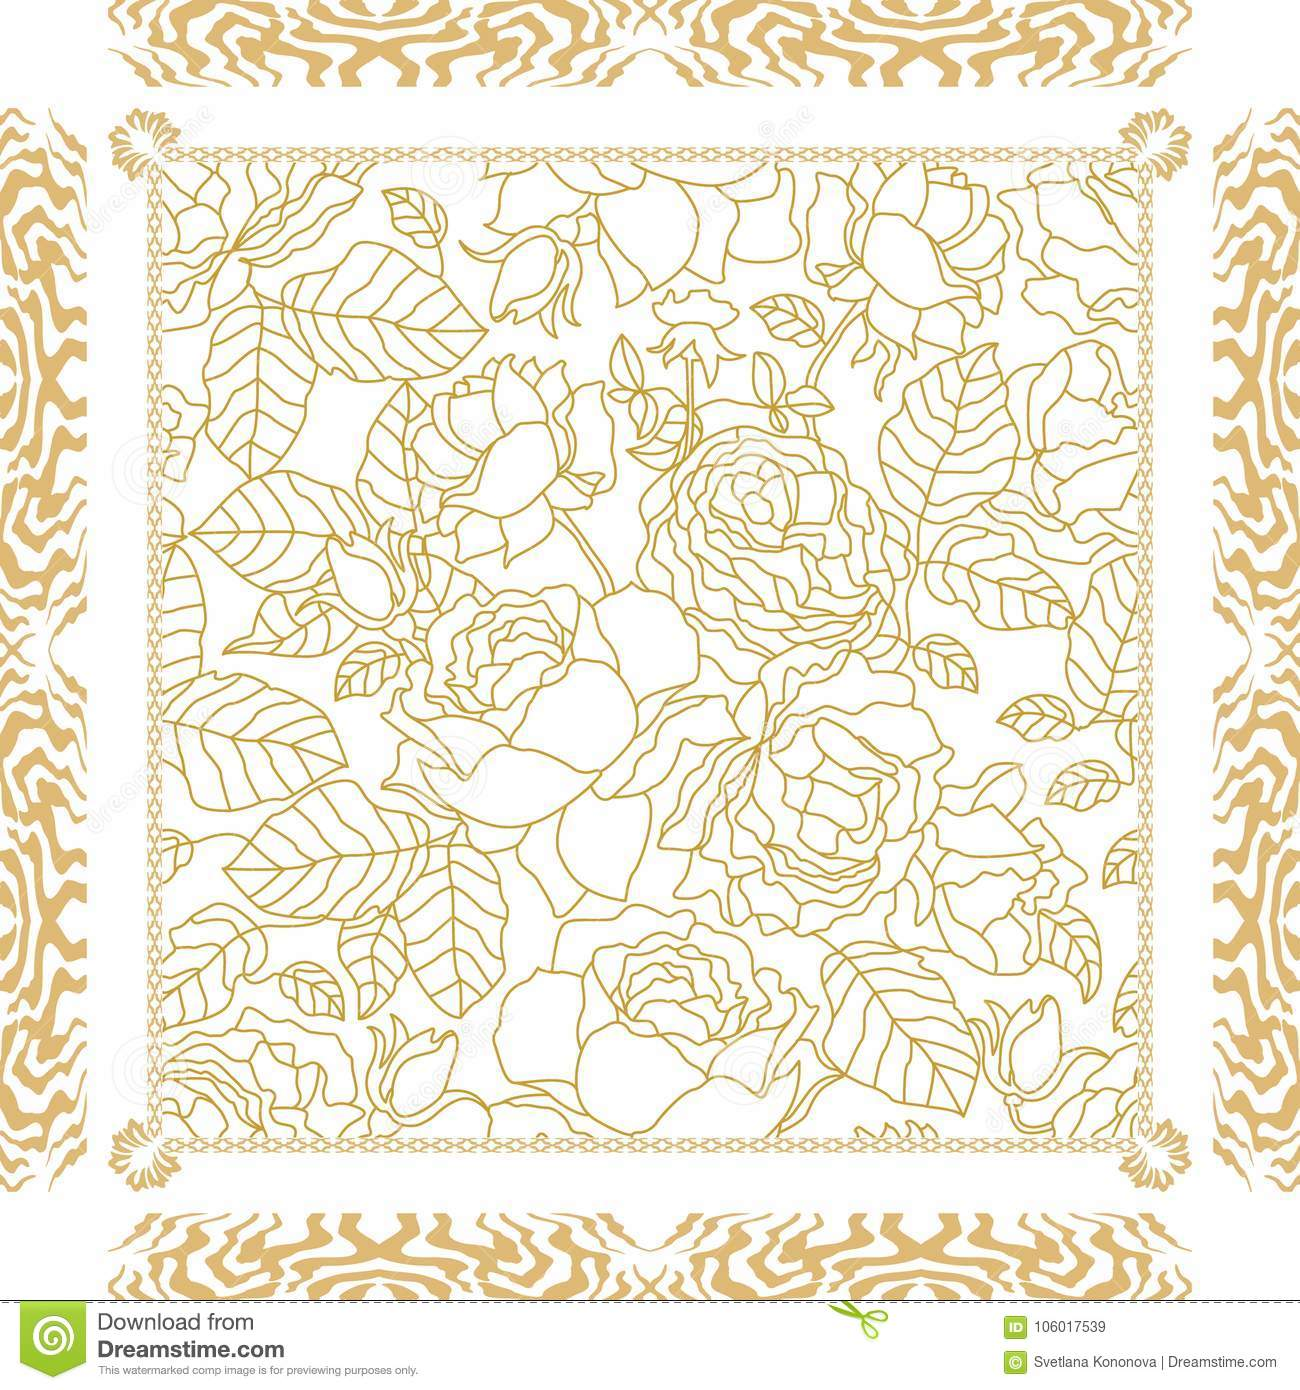 c340e13841d White and golden silk scarf with linear floral print and vintage frame.